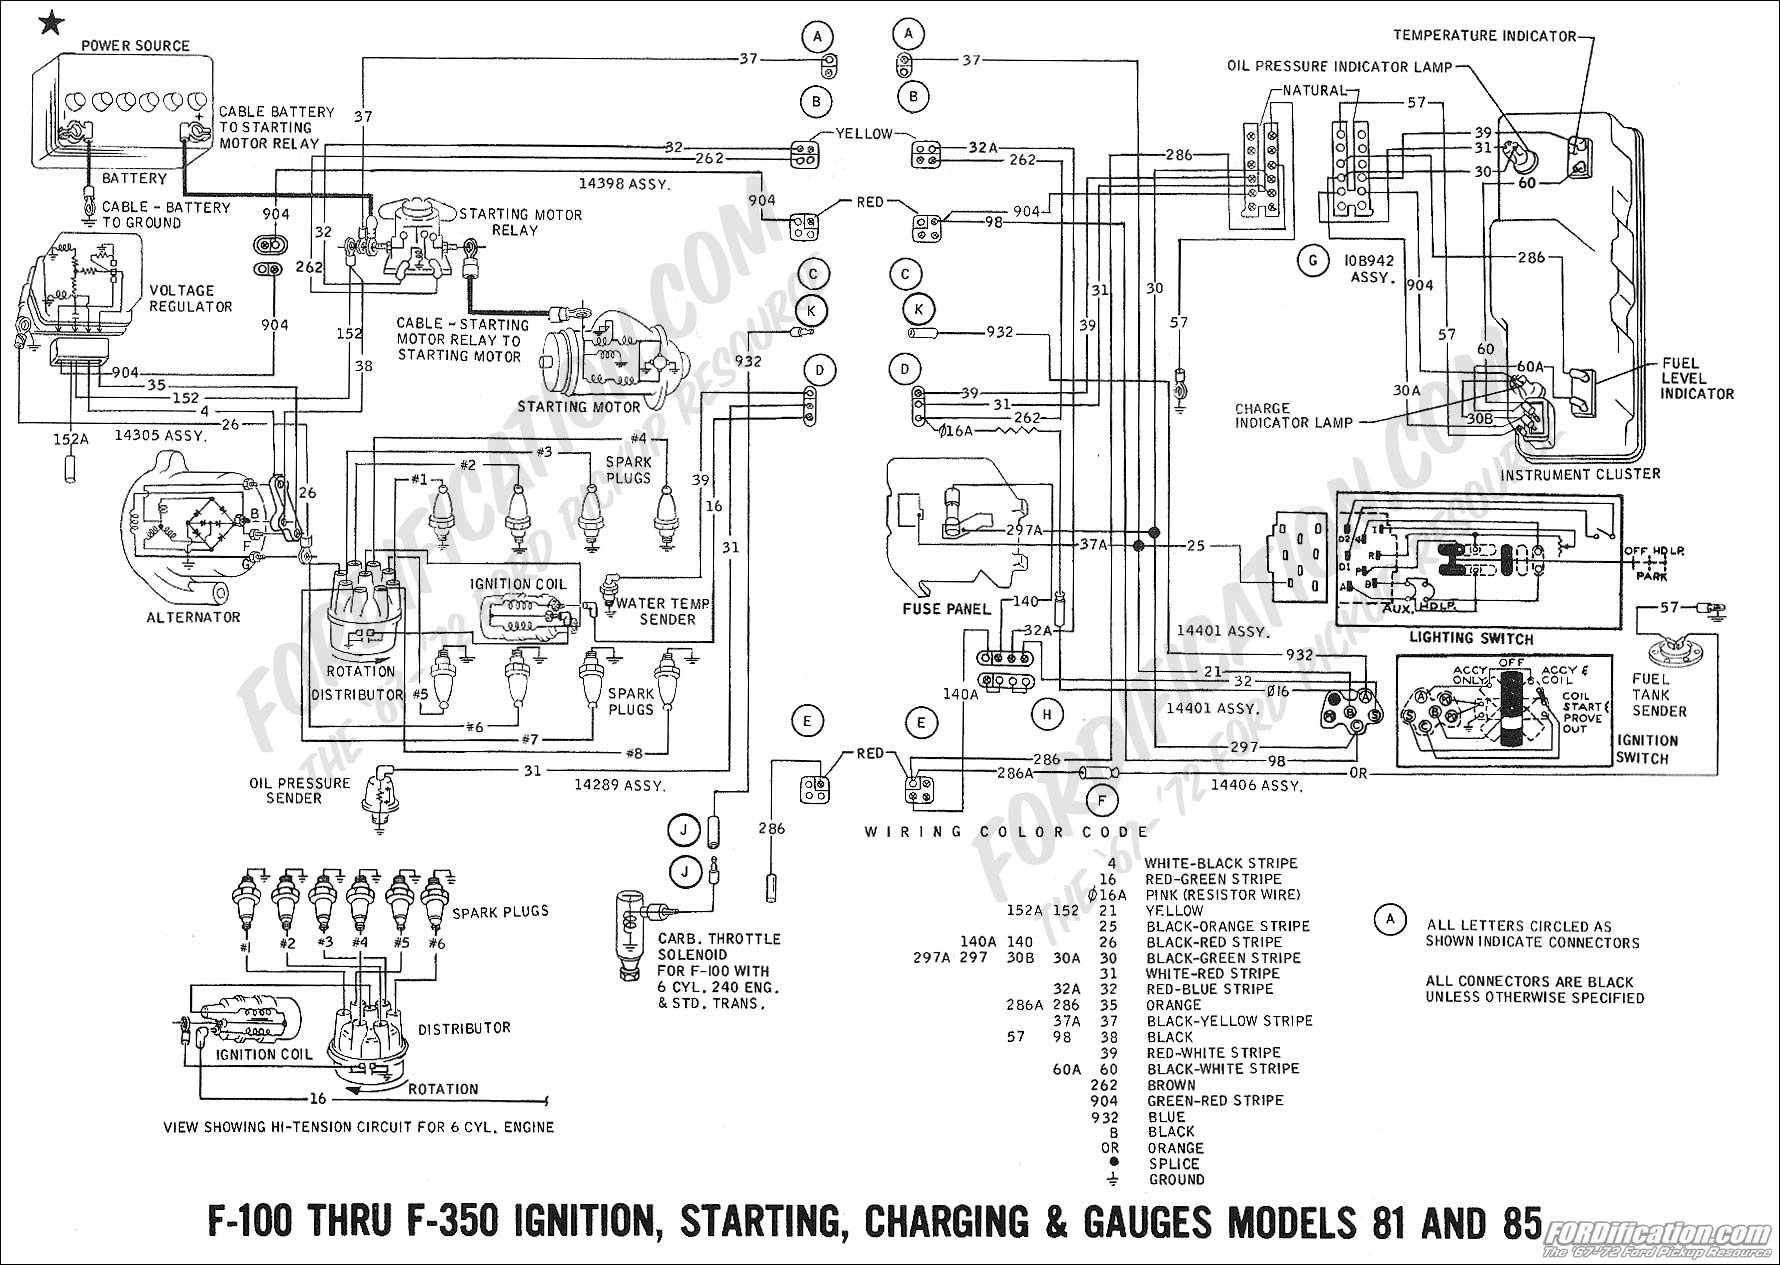 Ford Wiring Schematic Diagram Data Harness 1956 F100 Essig E 450 1981